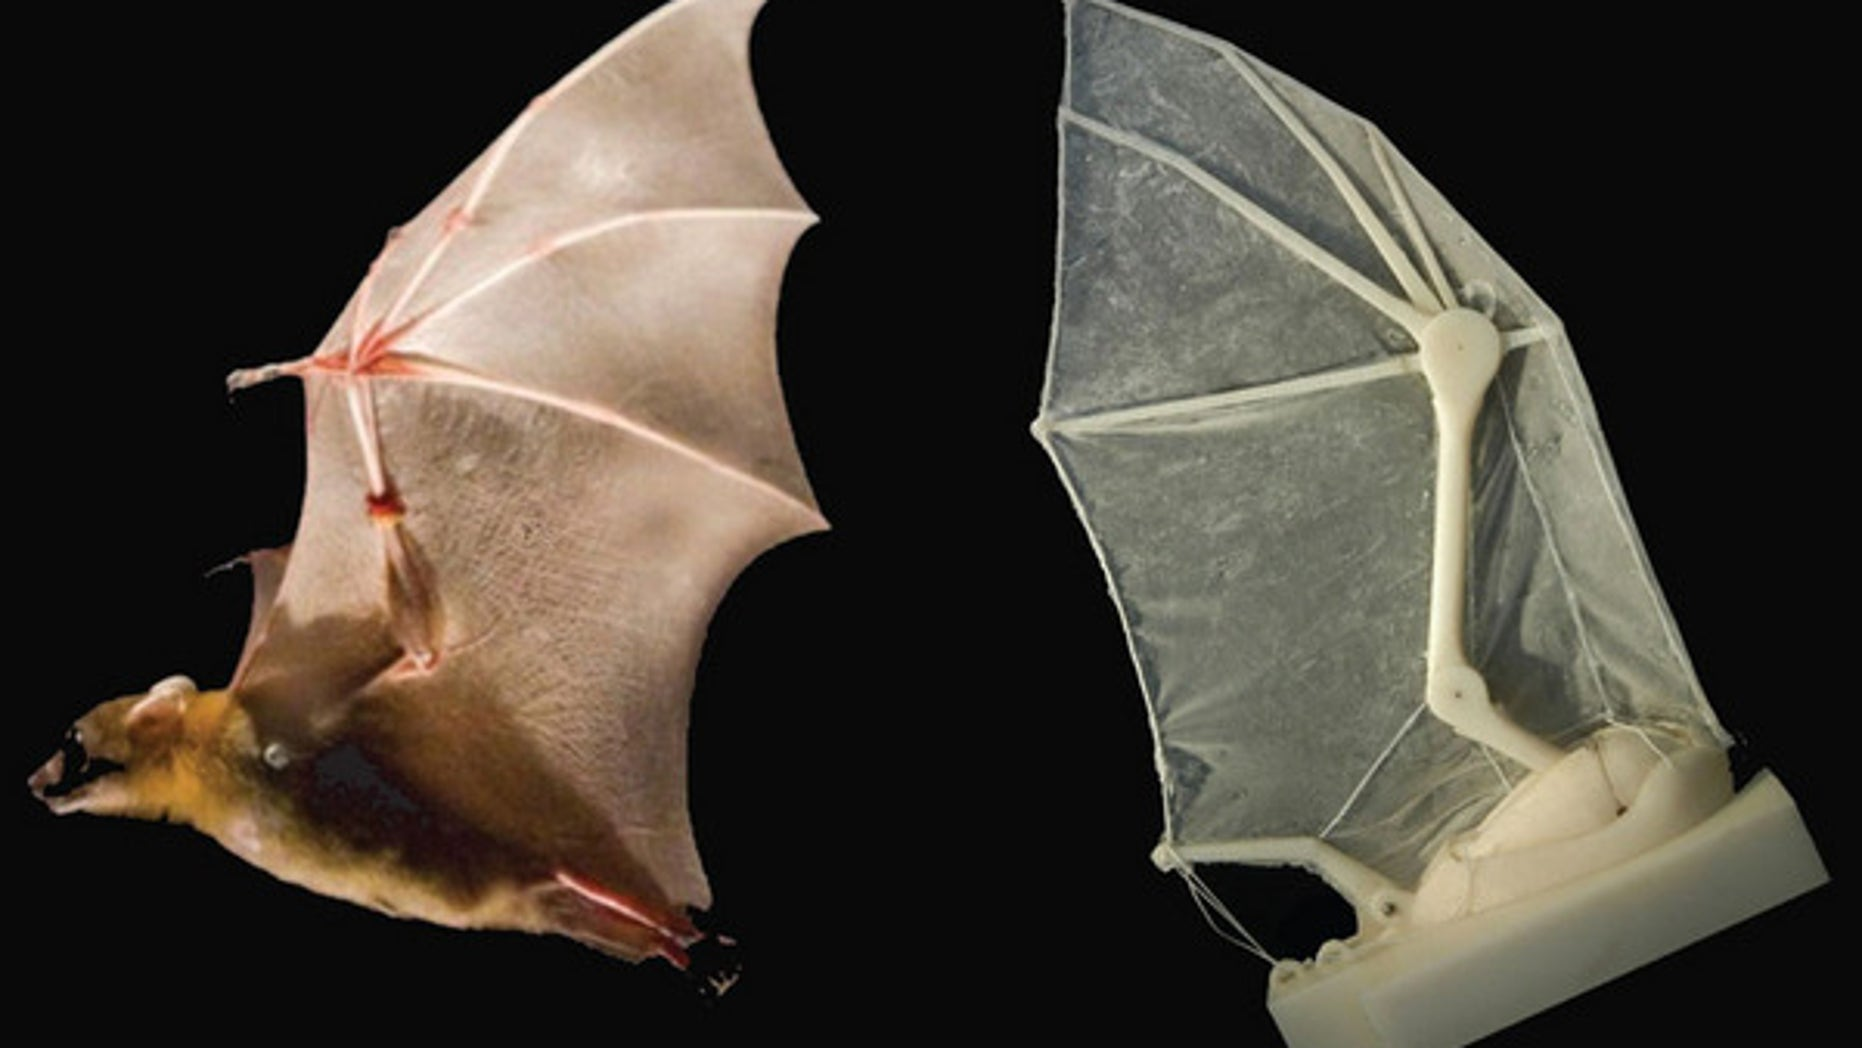 By building a robotic bat wing, scientists have uncovered flight secrets of real bats: the function of ligaments, the elasticity of skin, the structural support of musculature, skeletal flexibility, upstroke, downstroke.